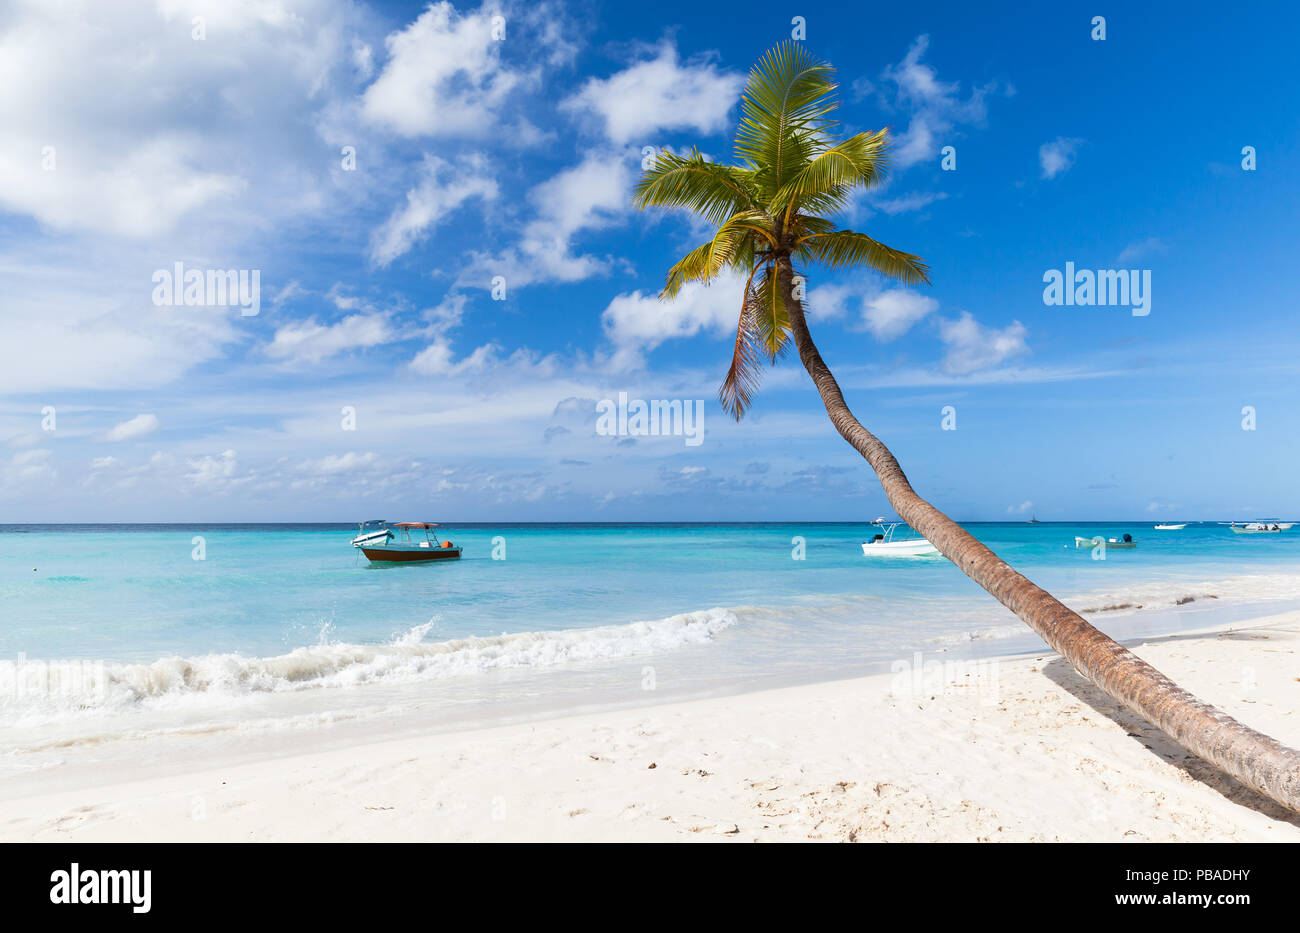 Coconut palm tree grows on white sandy beach of Saona island. Caribbean Sea coast, Dominican republic Stock Photo